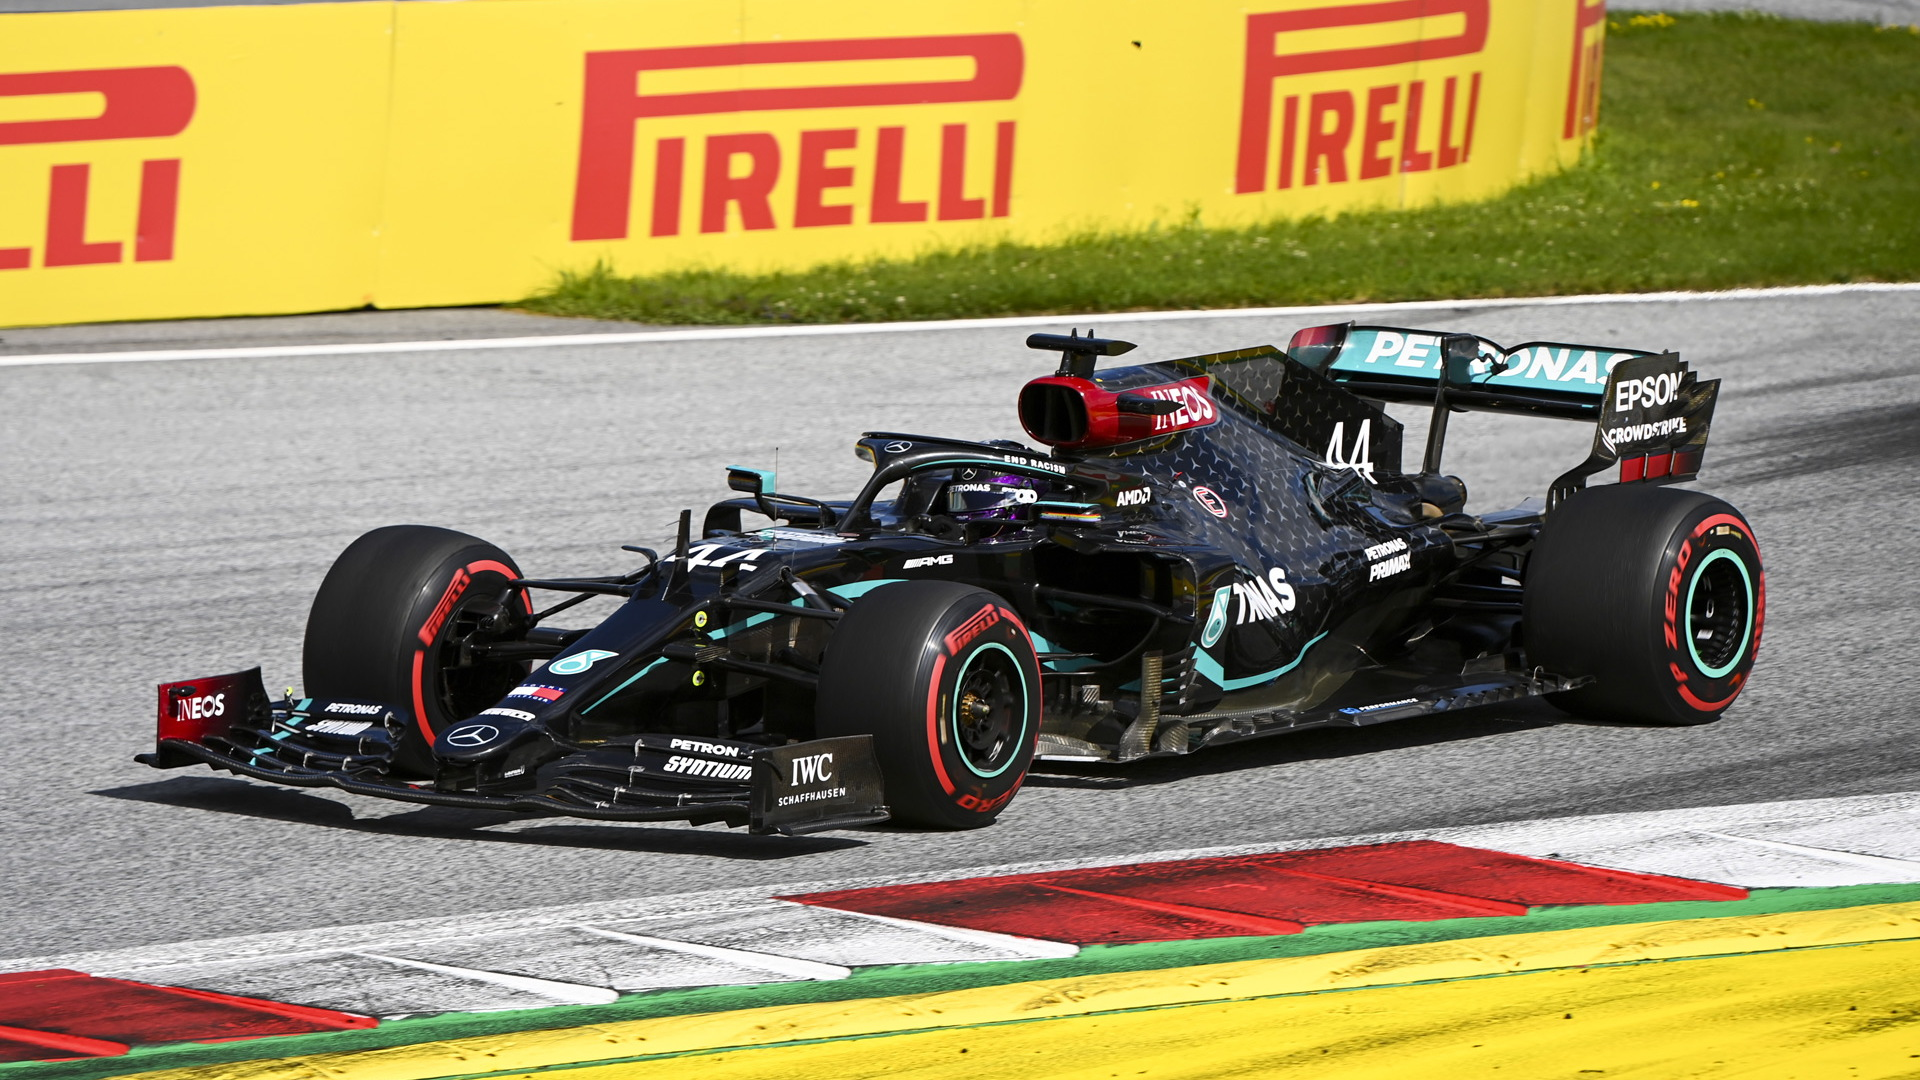 Mercedes-AMG's Lewis Hamilton at the 2020 Formula One Styrian Grand Prix